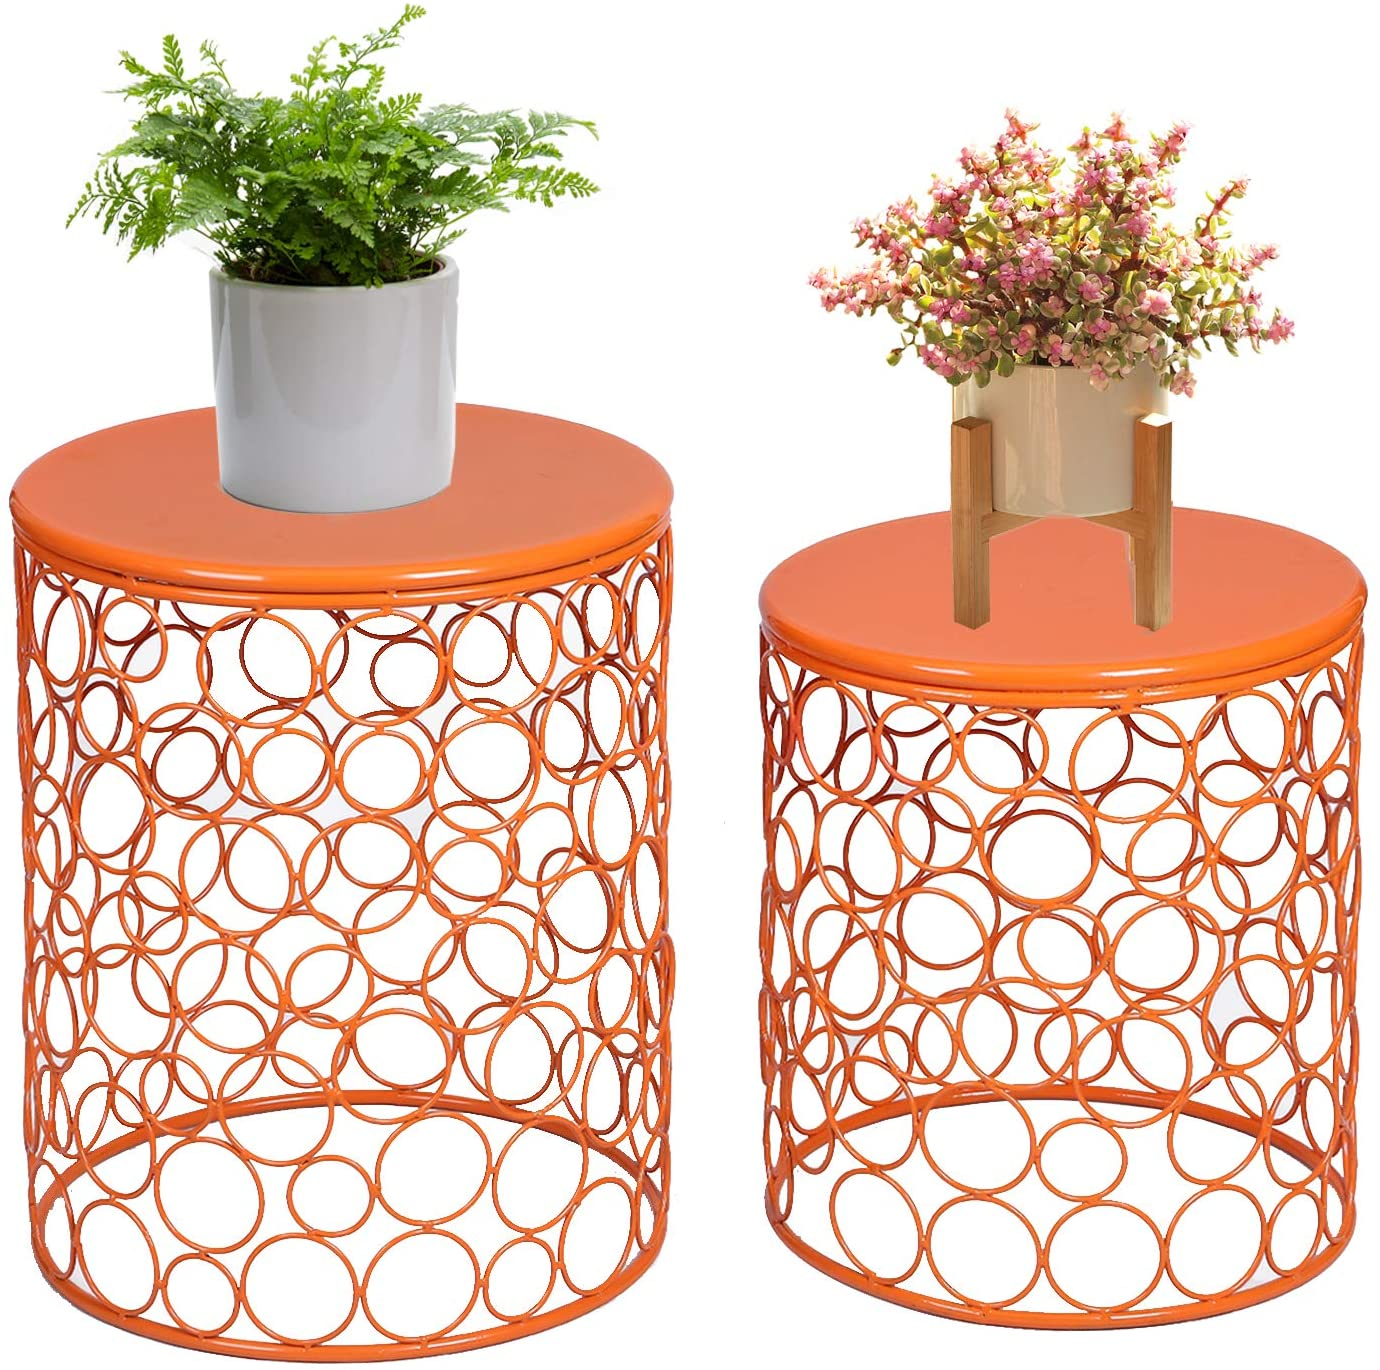 Adeco Home Garden Accents Circle Wired Round Iron Metal Nesting Stool Side End Table Plant Stand, Bubble Pattern, Orange Red, Set of Two